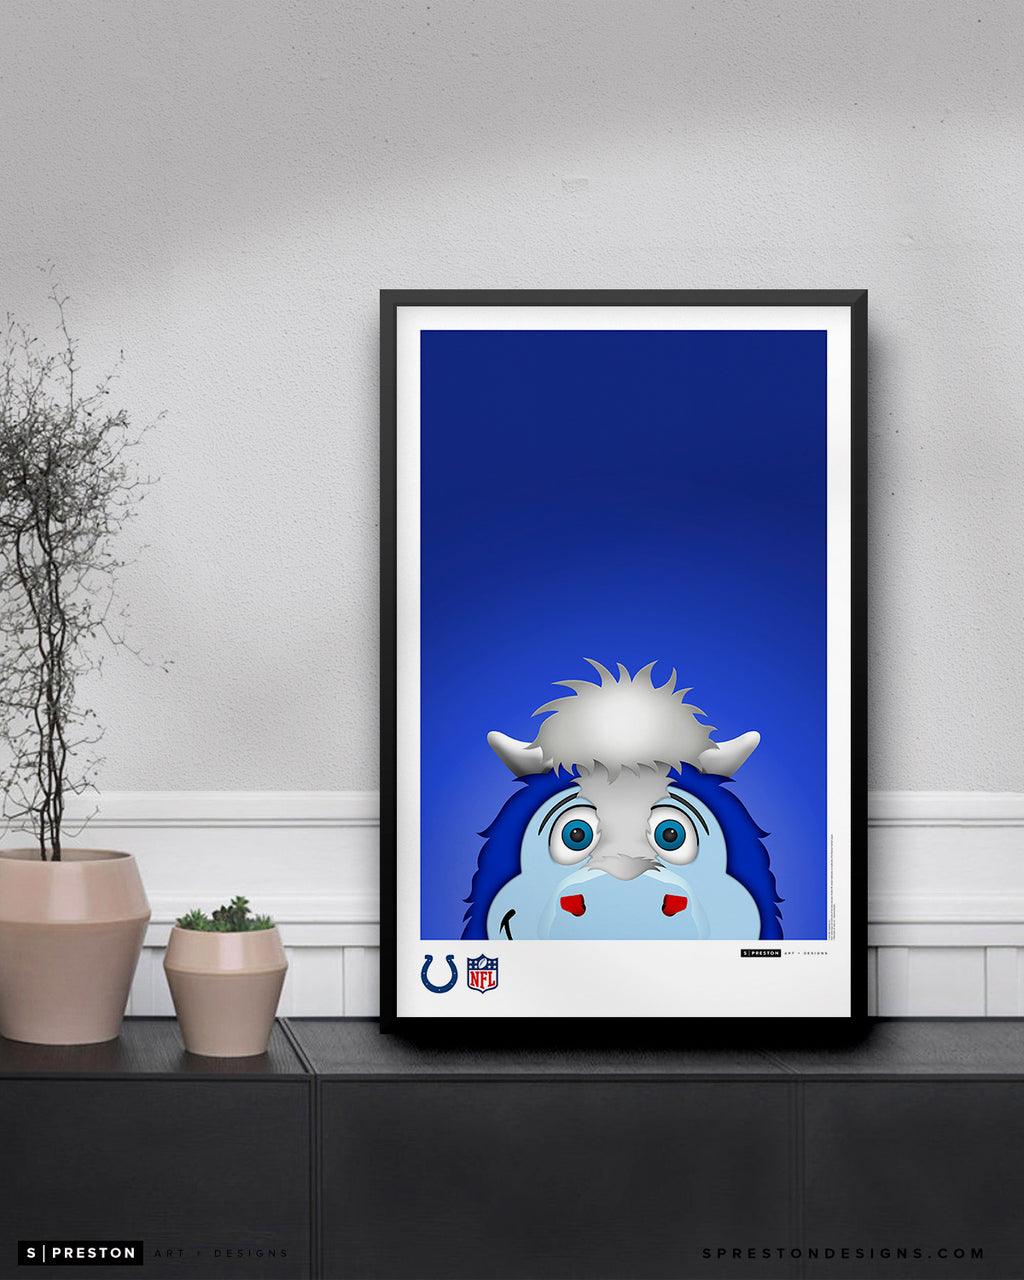 Minimalist Blue Poster Print Indianapolis Colts - S. Preston